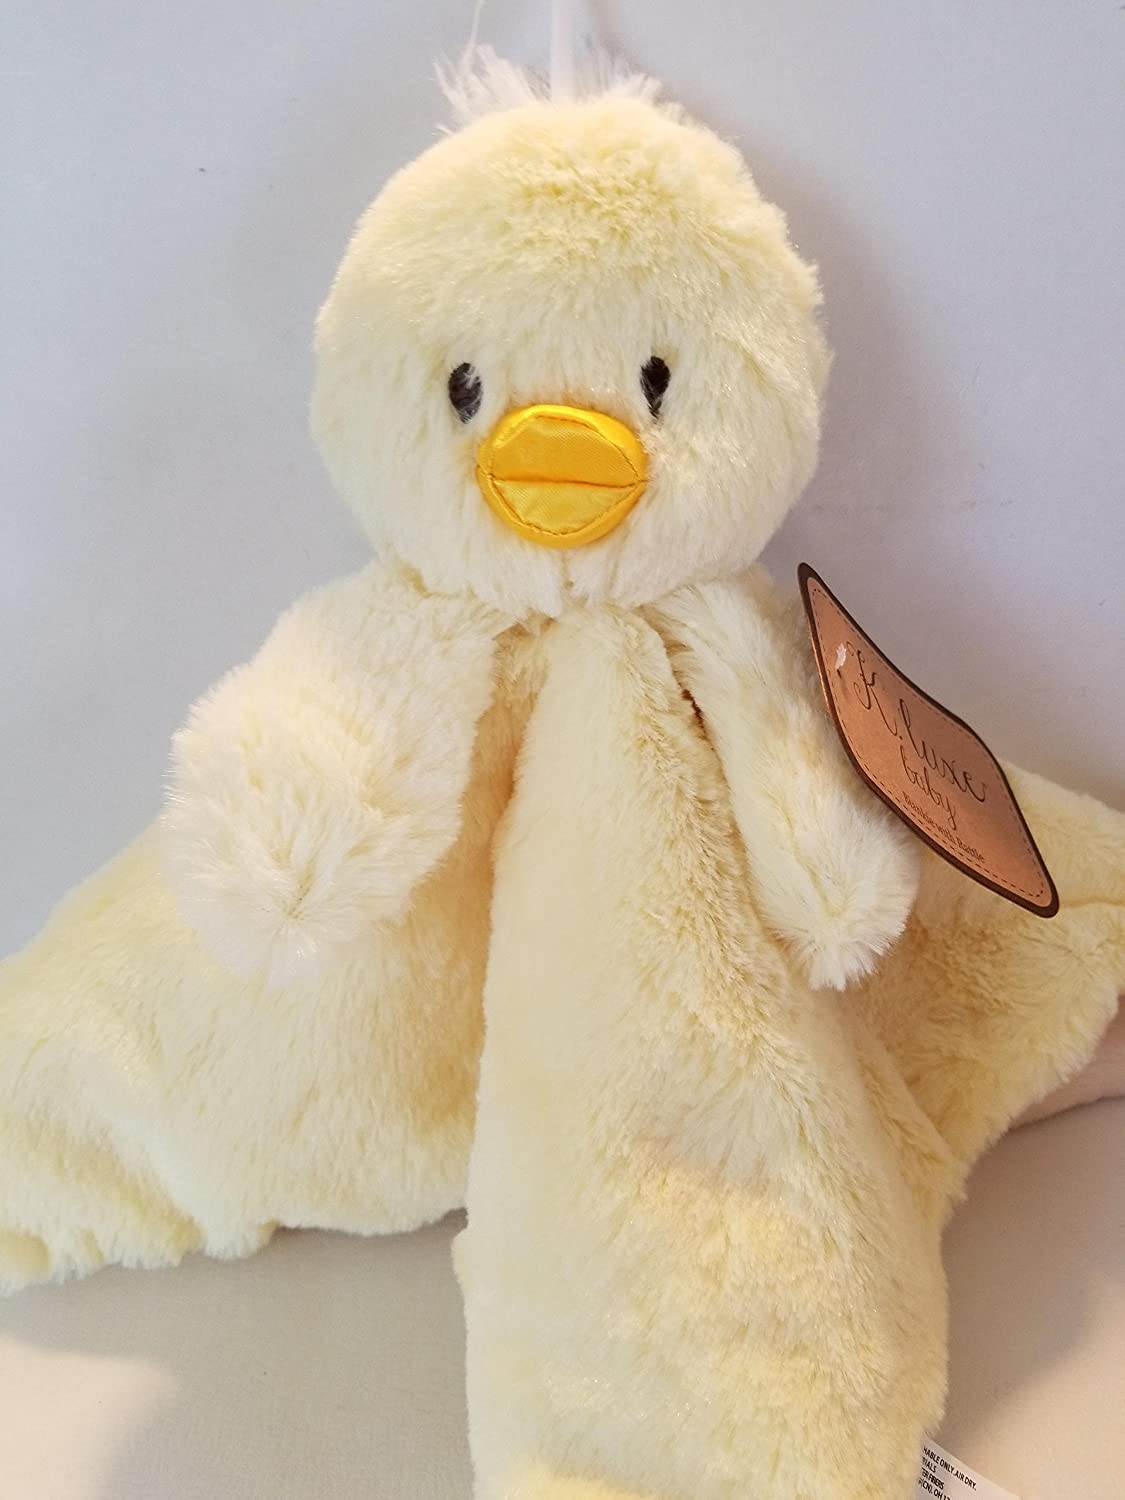 BABY DUCK BLANKIE with RATTLE by K.luxe baby Kellytoy SG/_B07B423XH8/_US